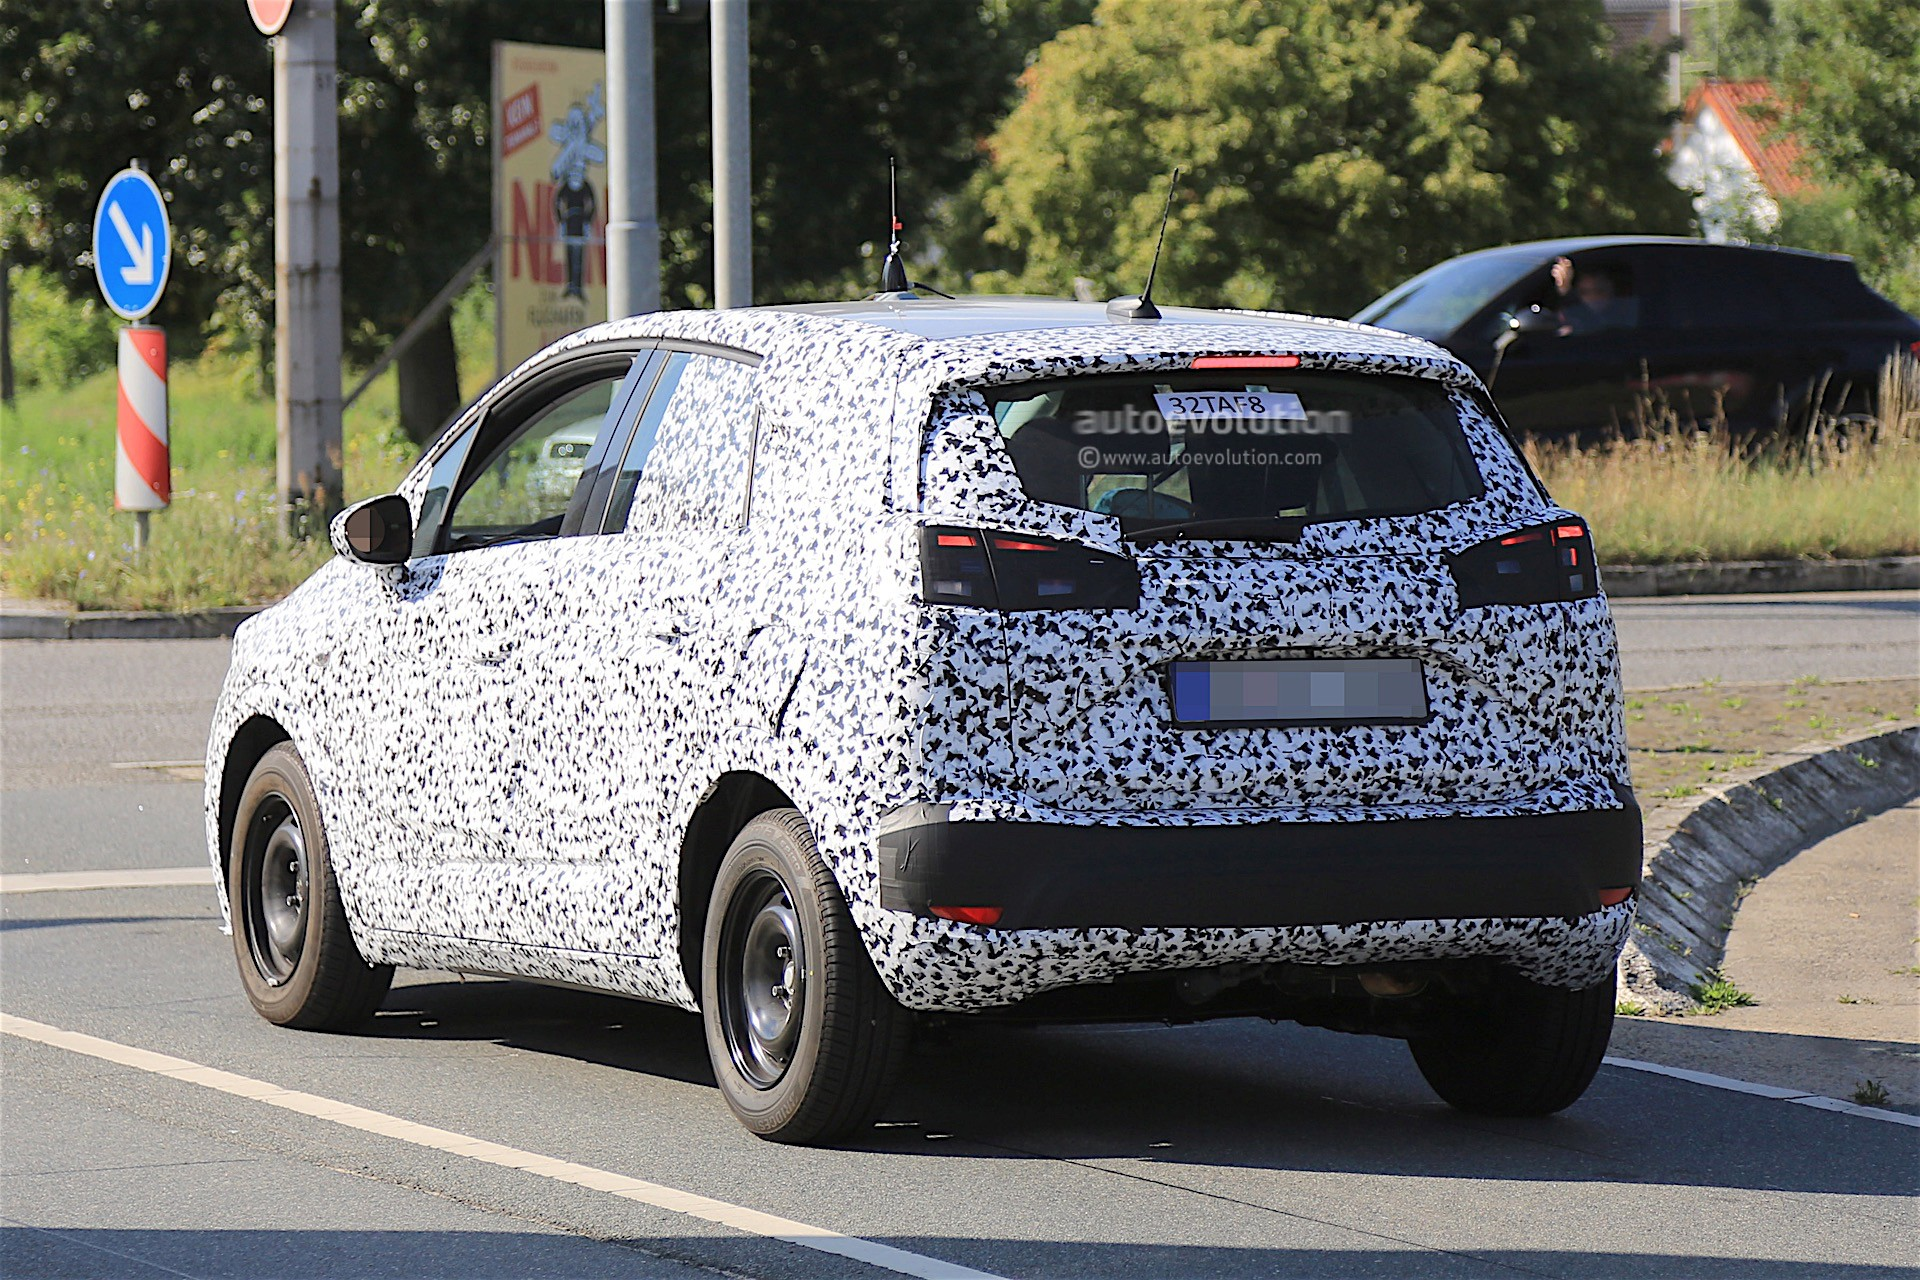 2017 opel meriva spied in front of opel headquarters still covered in camo autoevolution. Black Bedroom Furniture Sets. Home Design Ideas